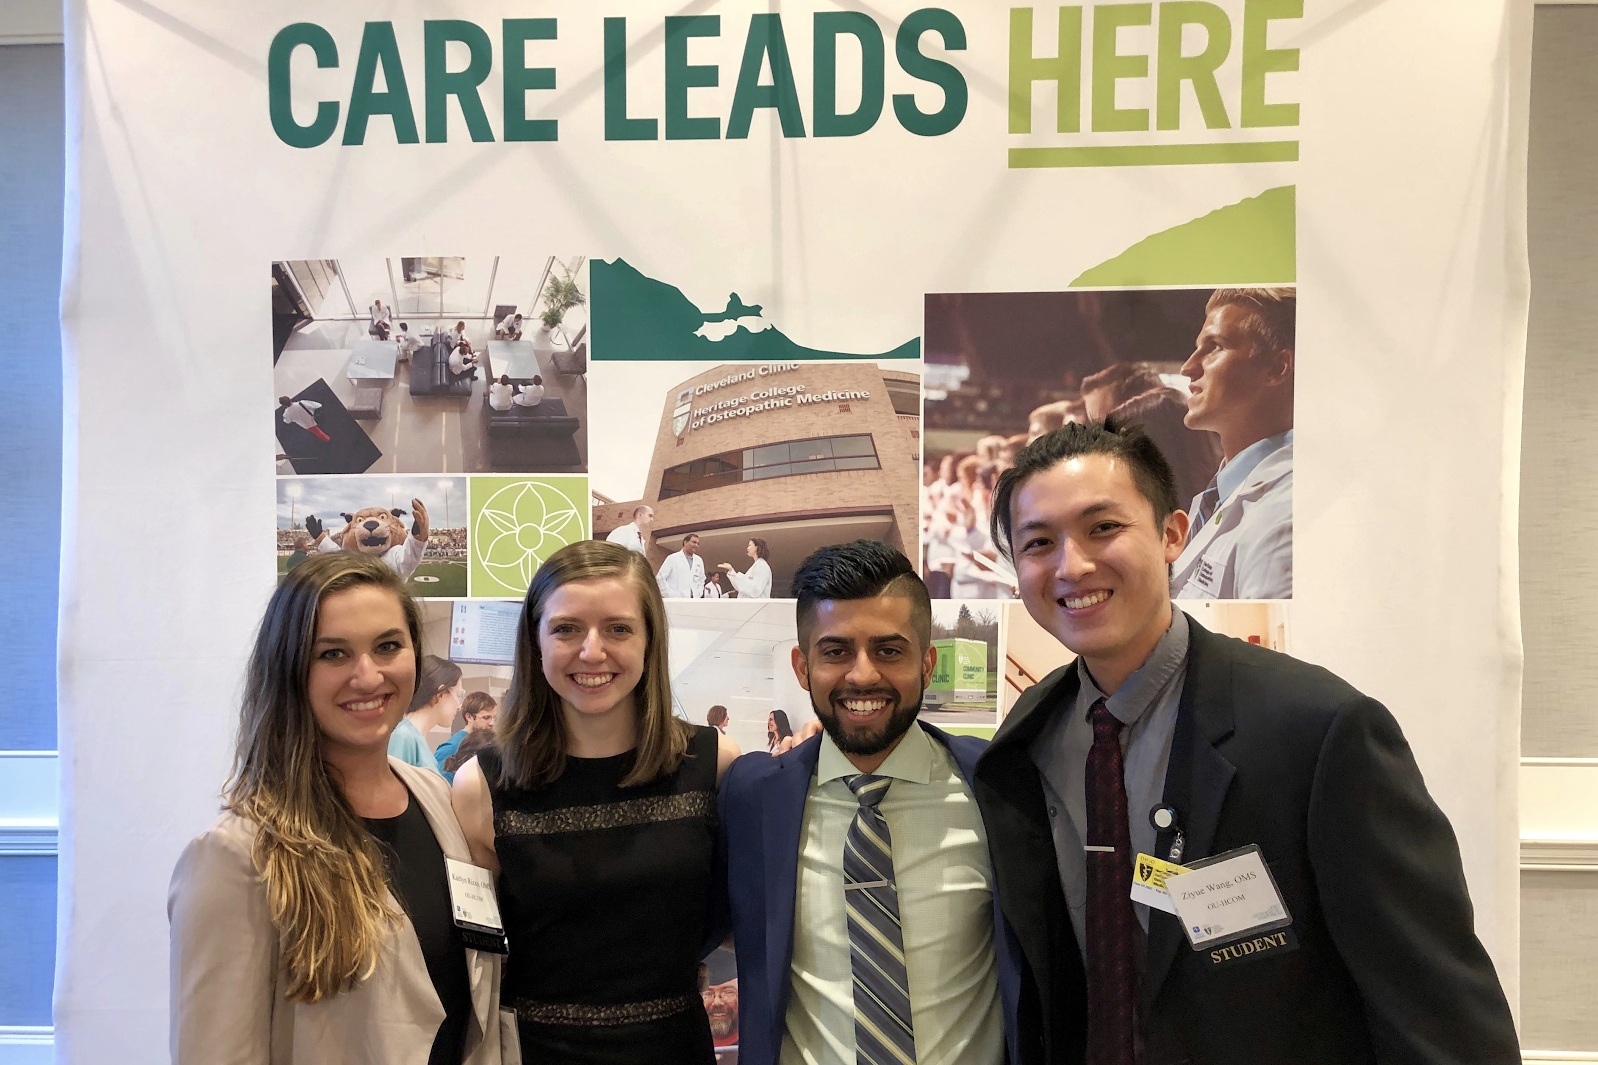 Kaitlyn and her peers at Ohio University Heritage College of Osteopathic Medicine.